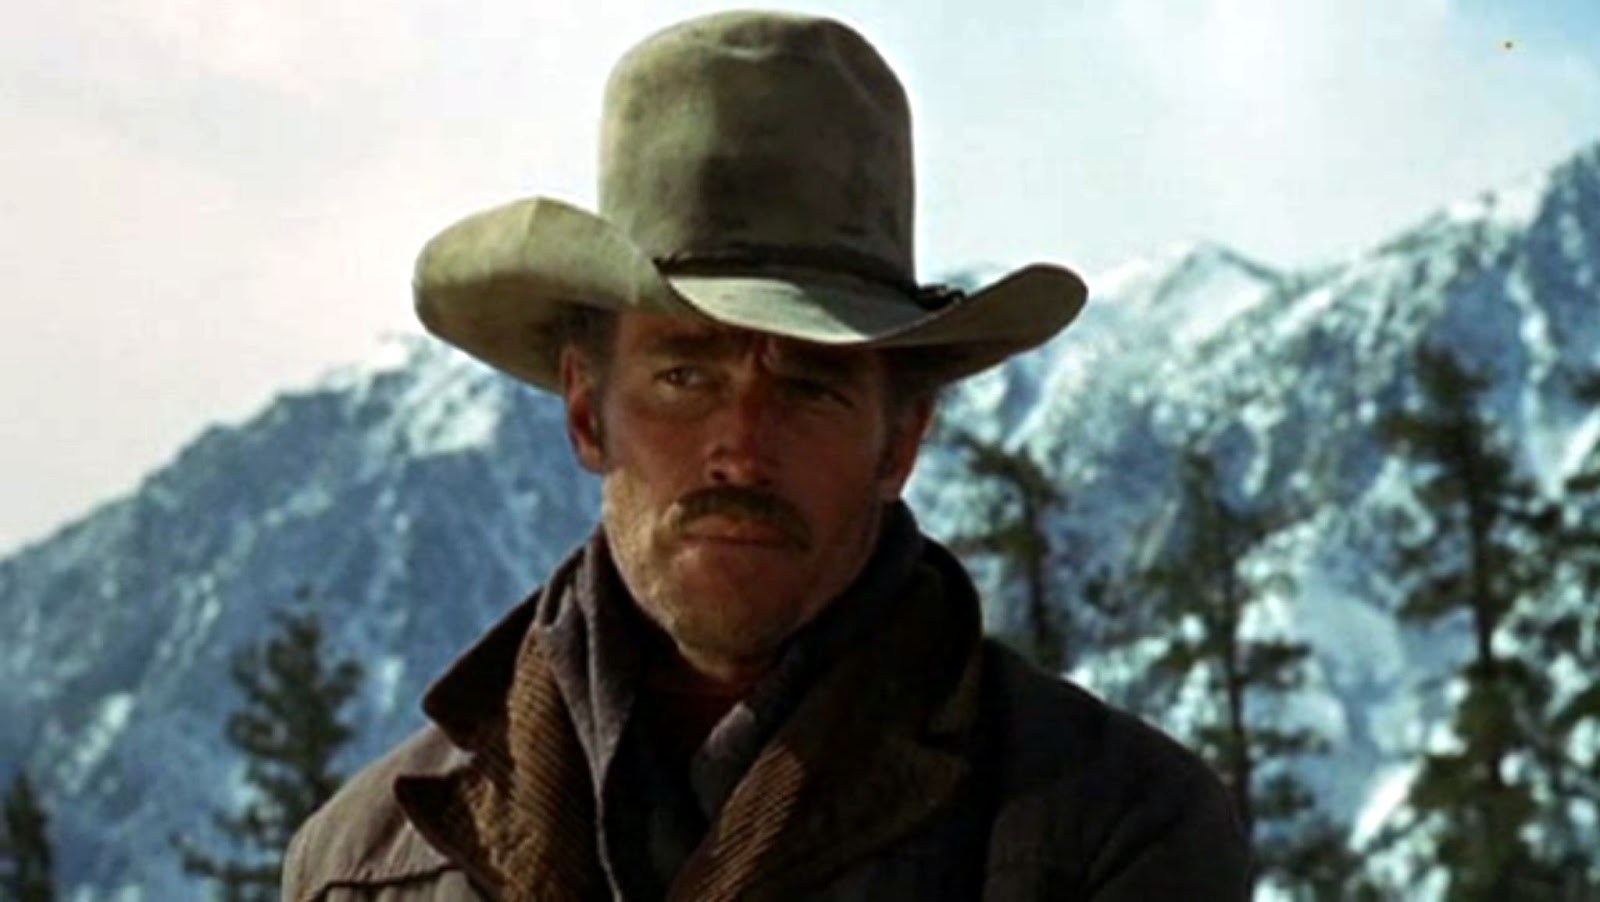 b28578861d2c18 I used that hat in about four Westerns. Then someone stole it on me. Wish I  could find him. I'd kill him. You get a good hat, ...